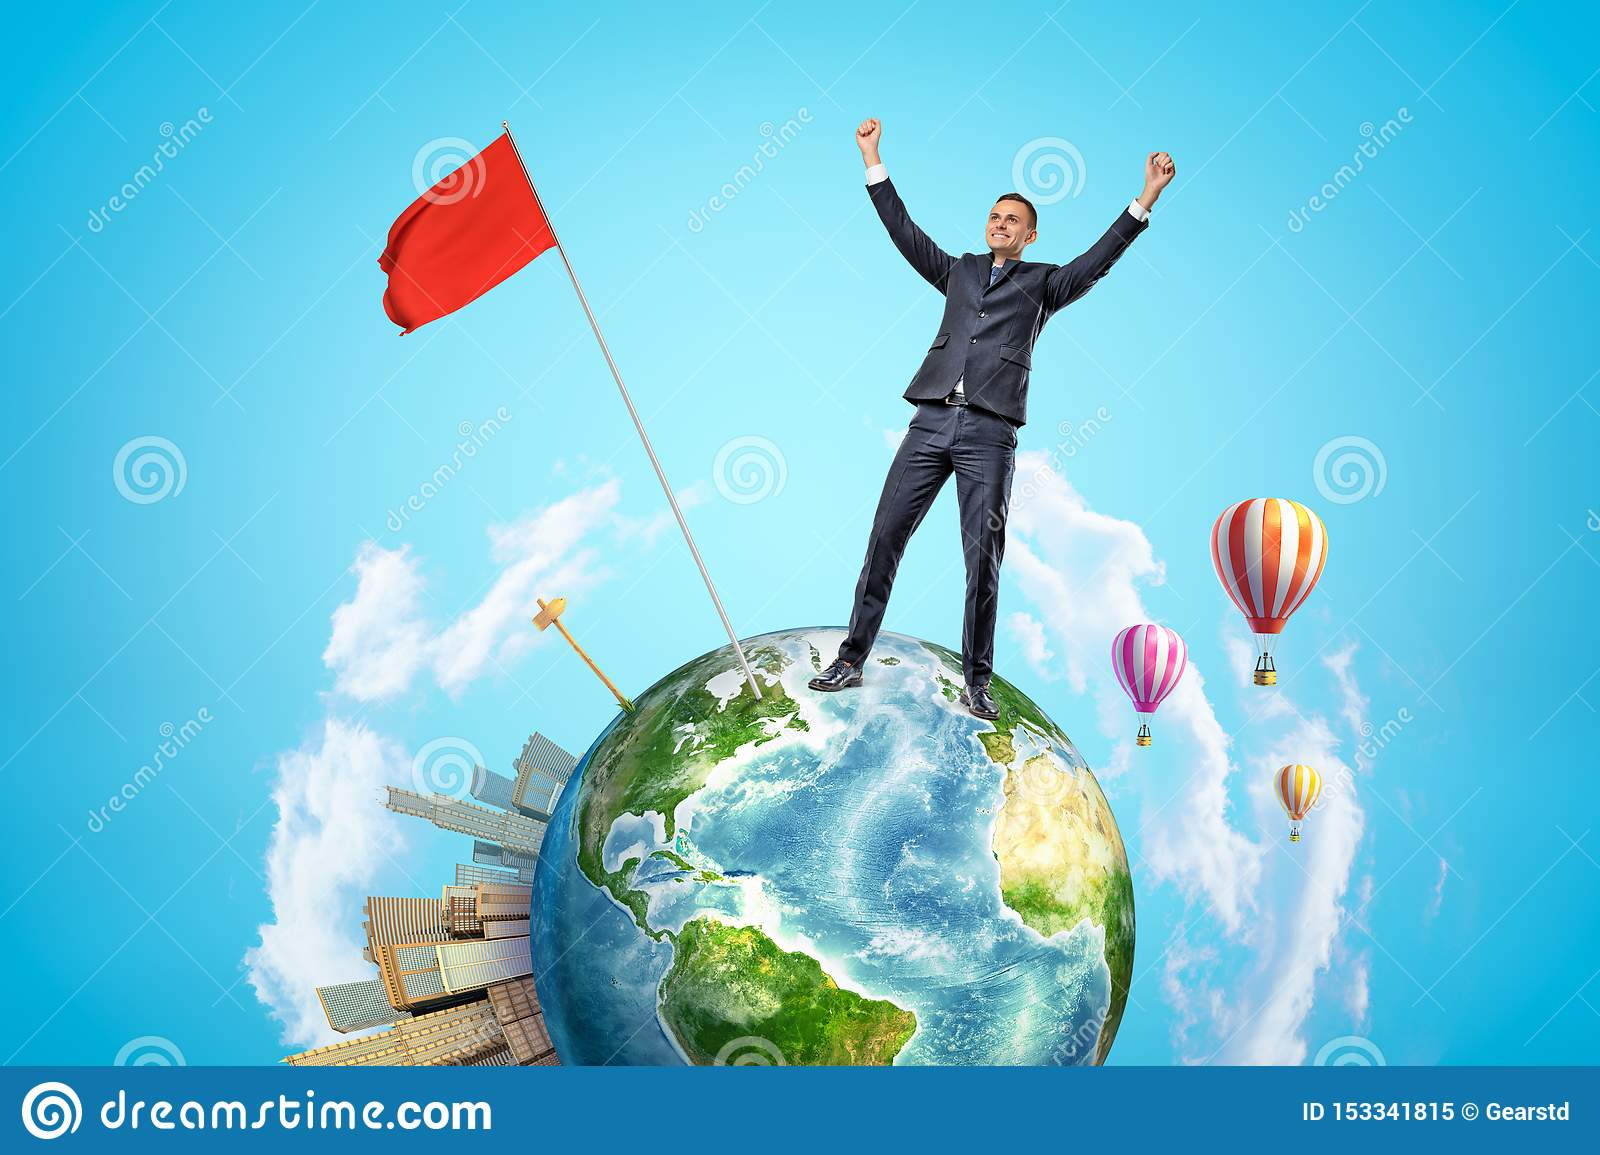 Small planet Earth with modern city popping up on one side and hot-air balloons flying in sky, and happy businessman who